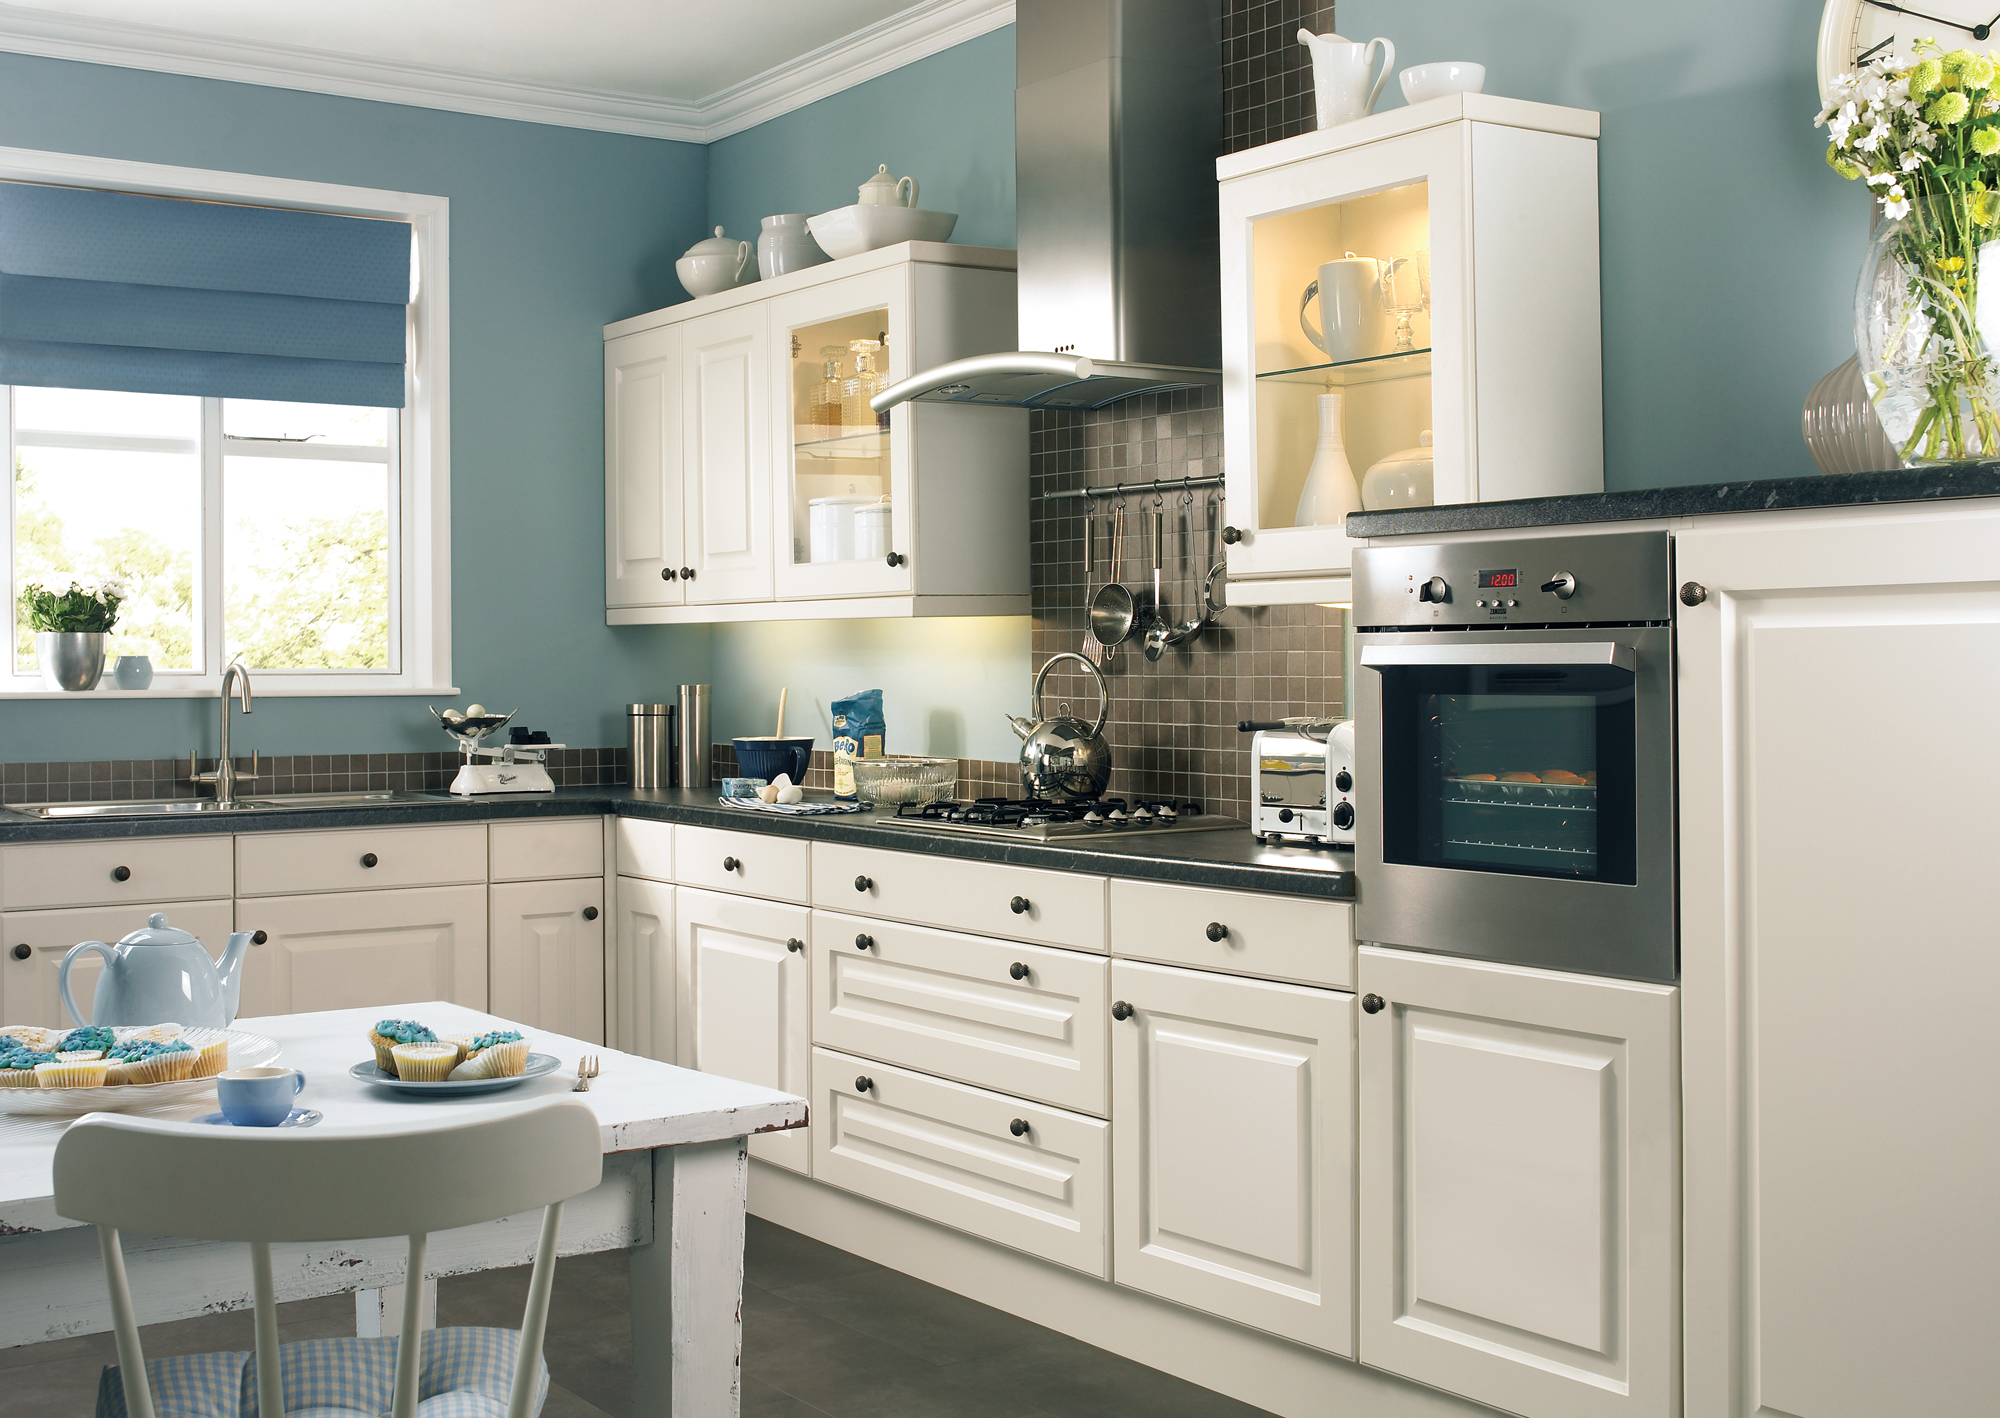 Abbey kitchens and bathrooms - Eco Abbey Oyster